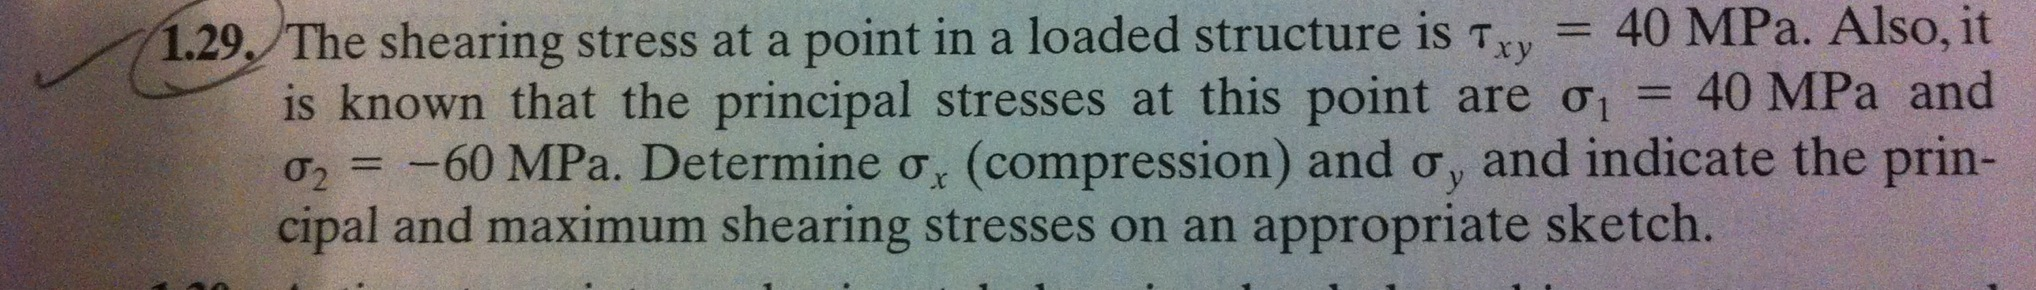 The shearing stress at a point in a loaded structu